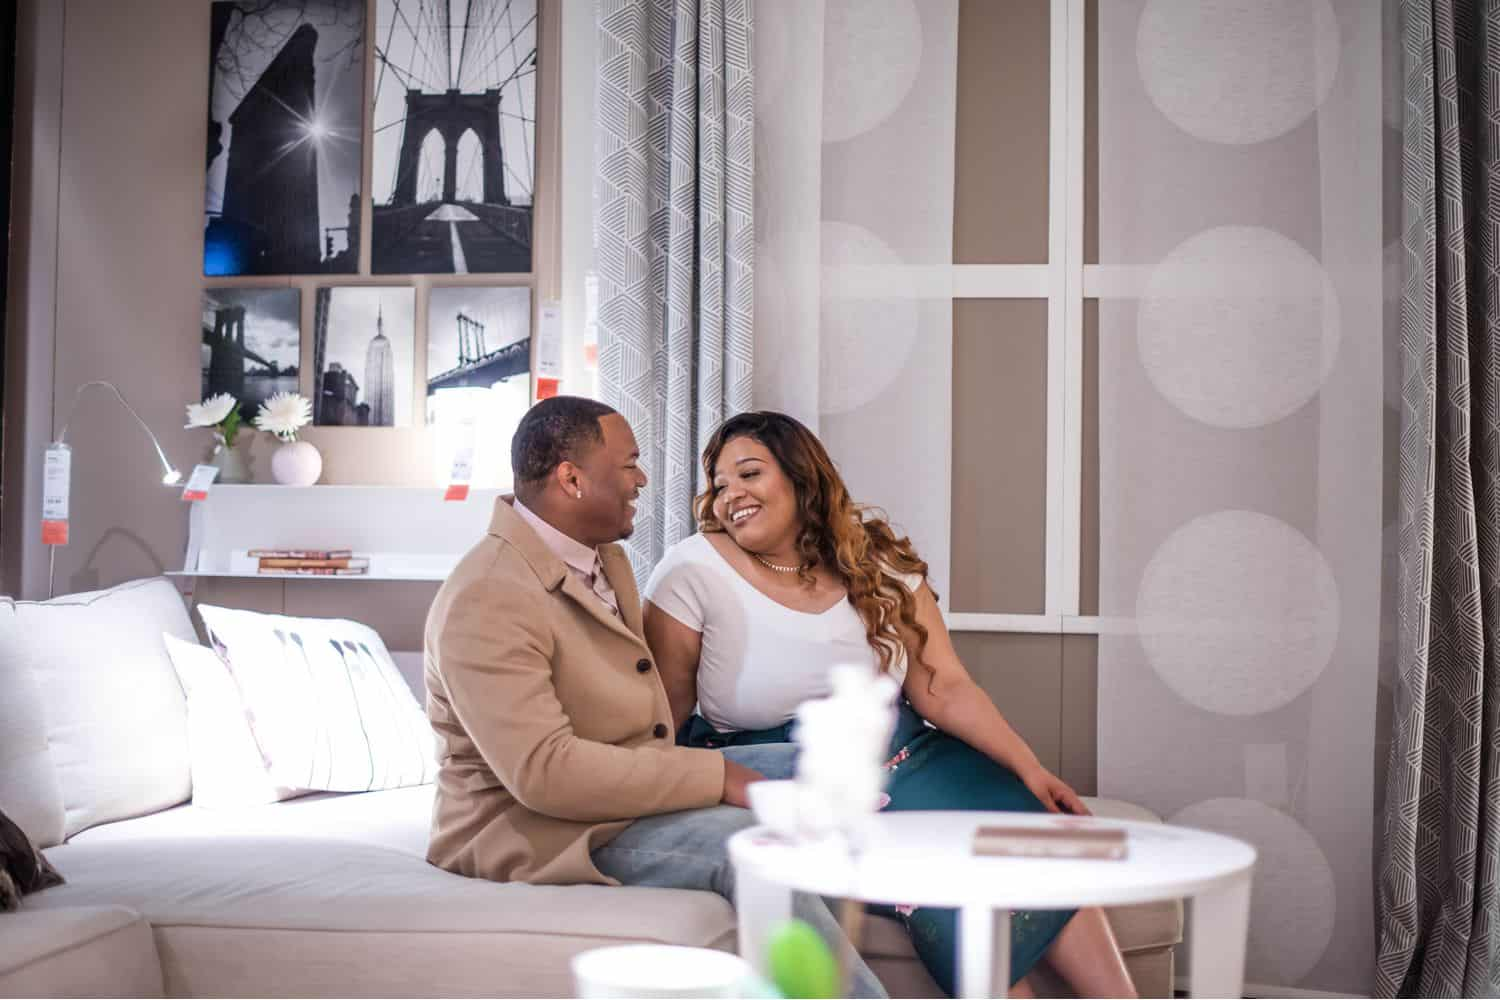 Great Engagement Images: Couple sitting together on IKEA bed.